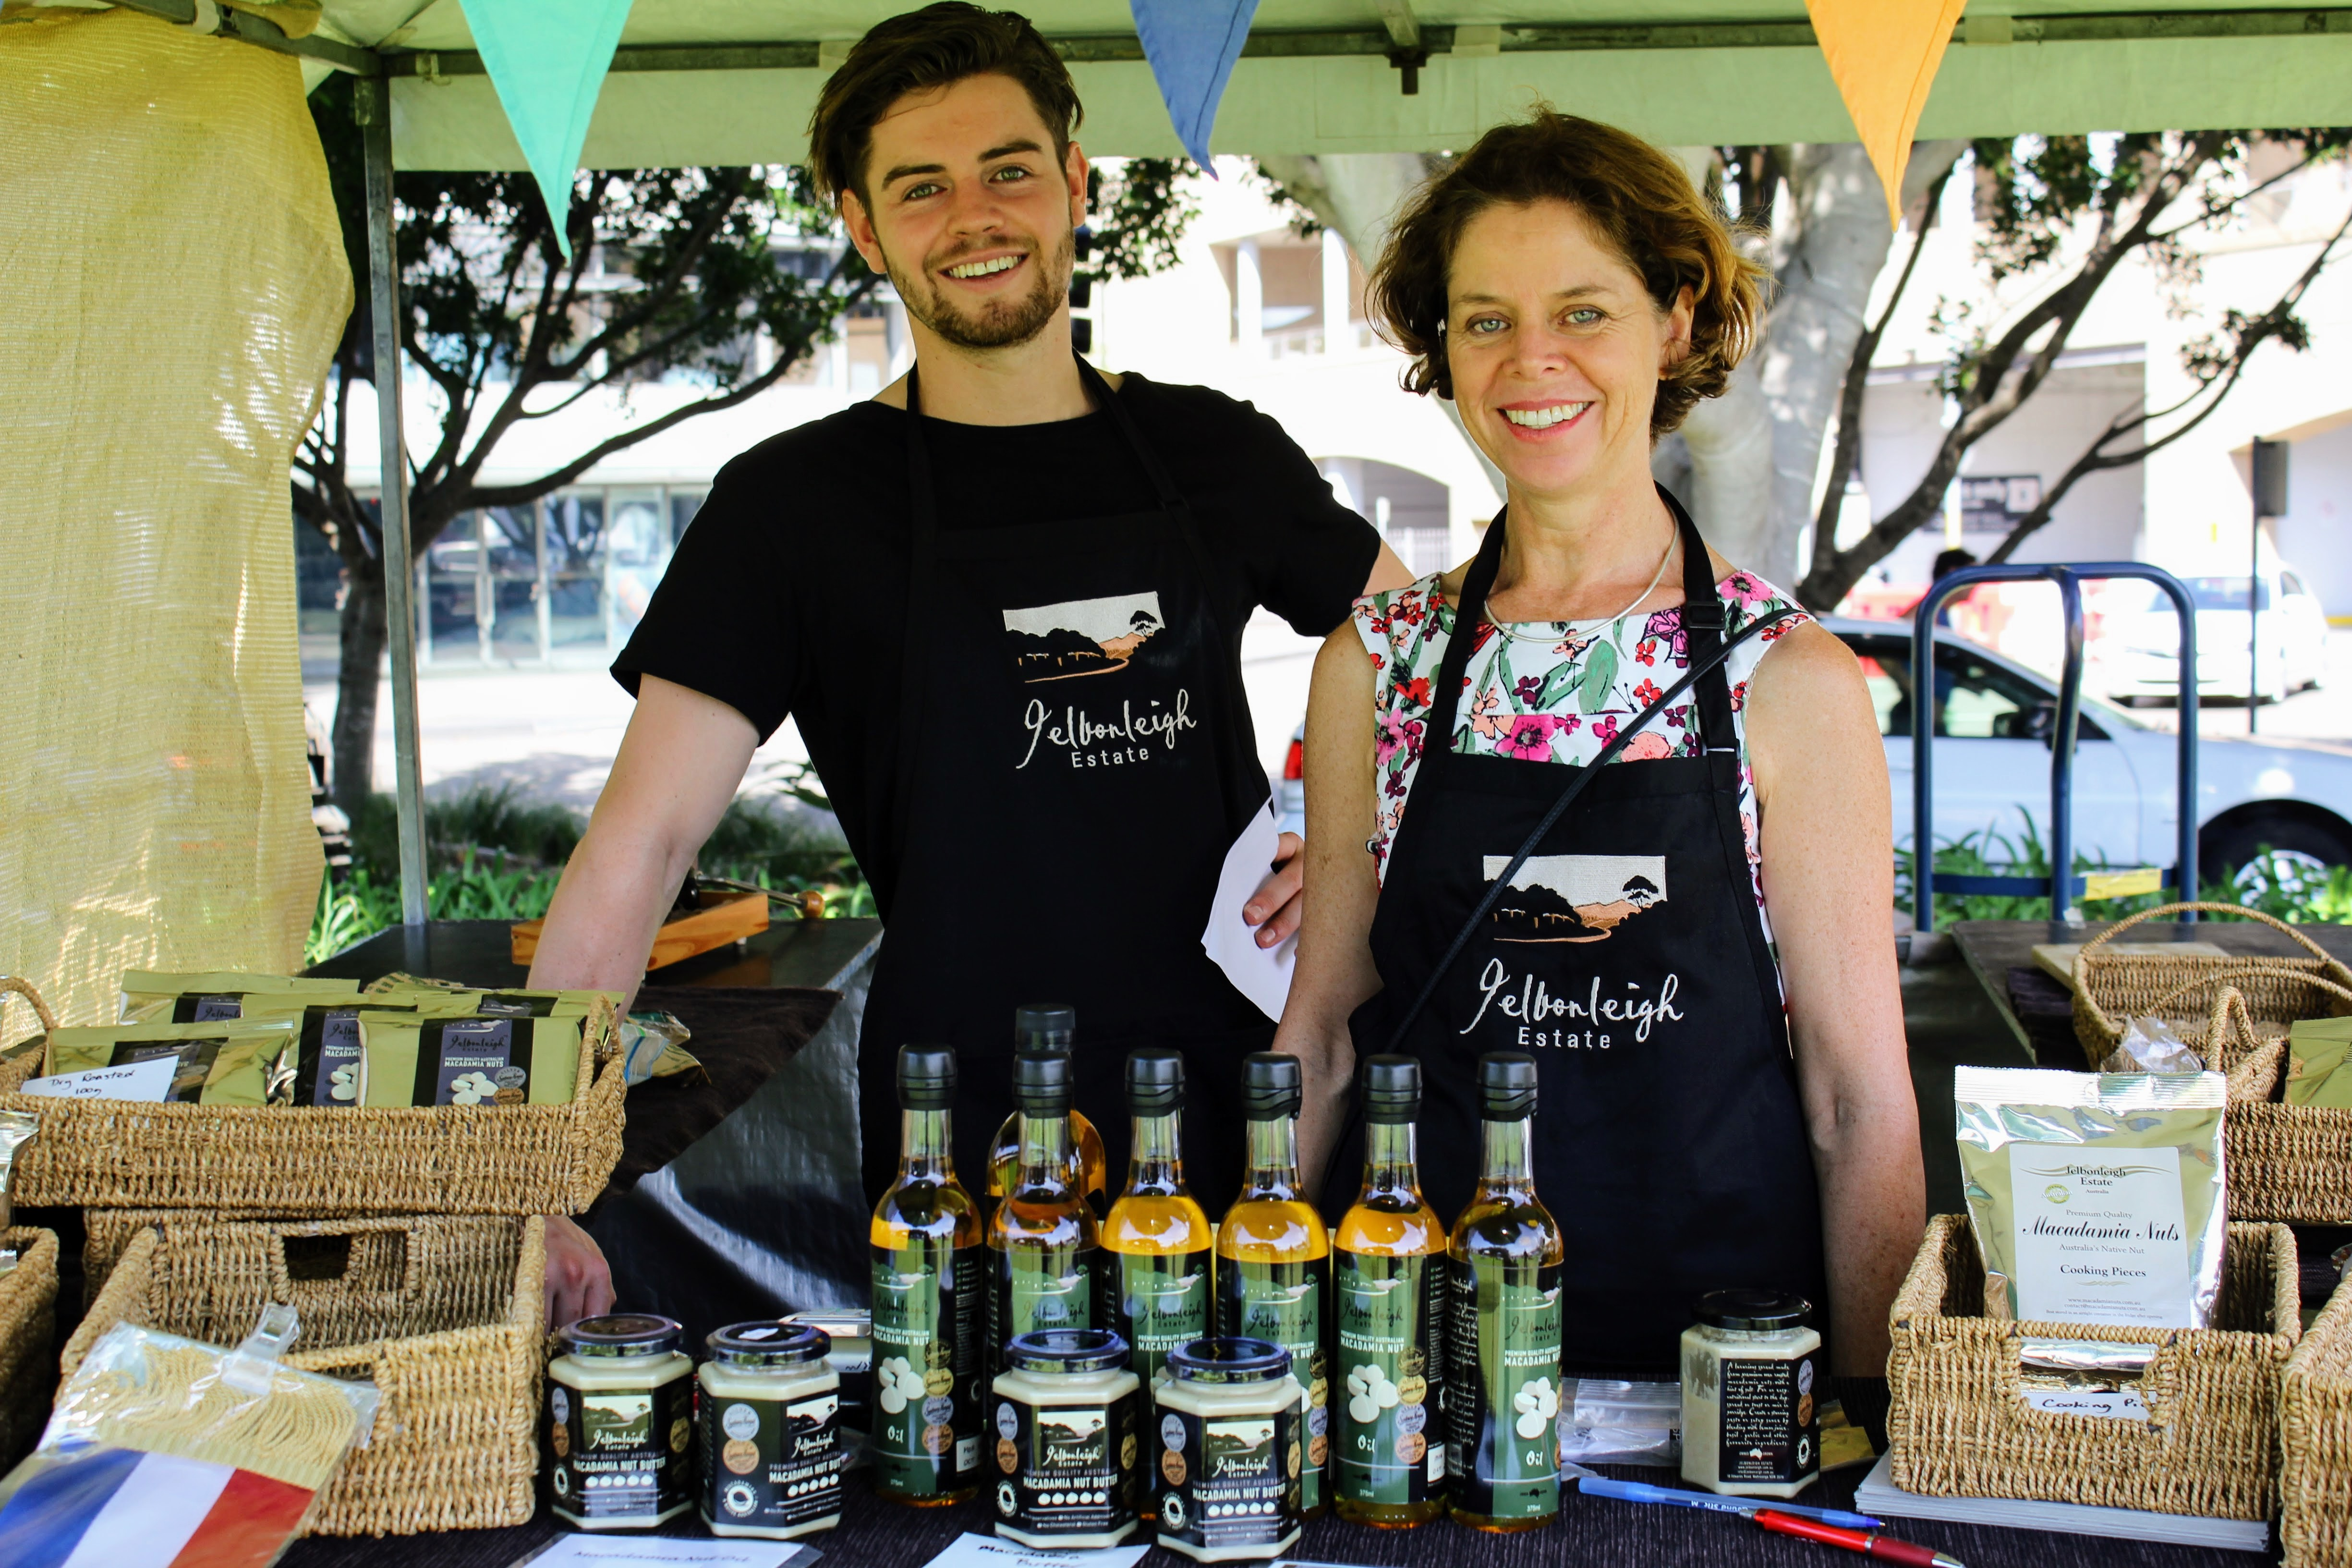 The Return of Pyrmont Growers Market